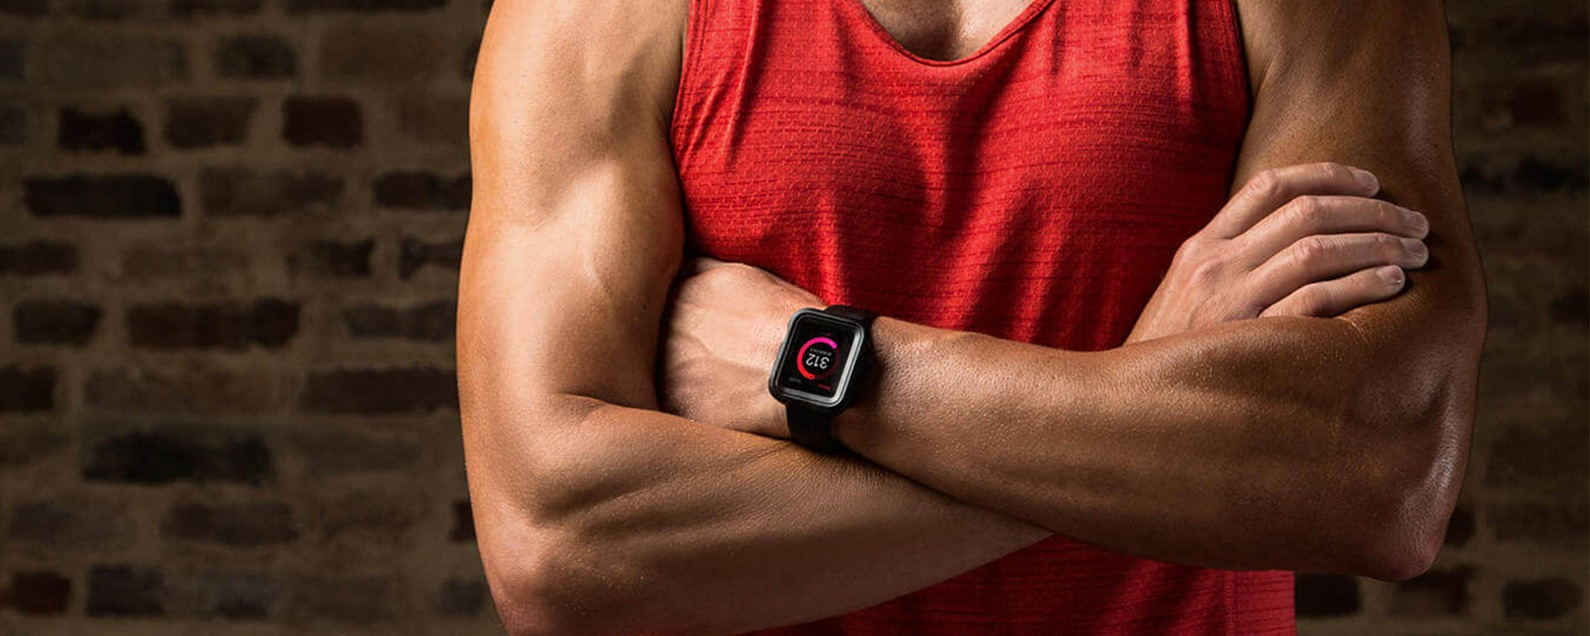 Hard on Your Apple Watch ? Check Out These 3 Best Watch Cases